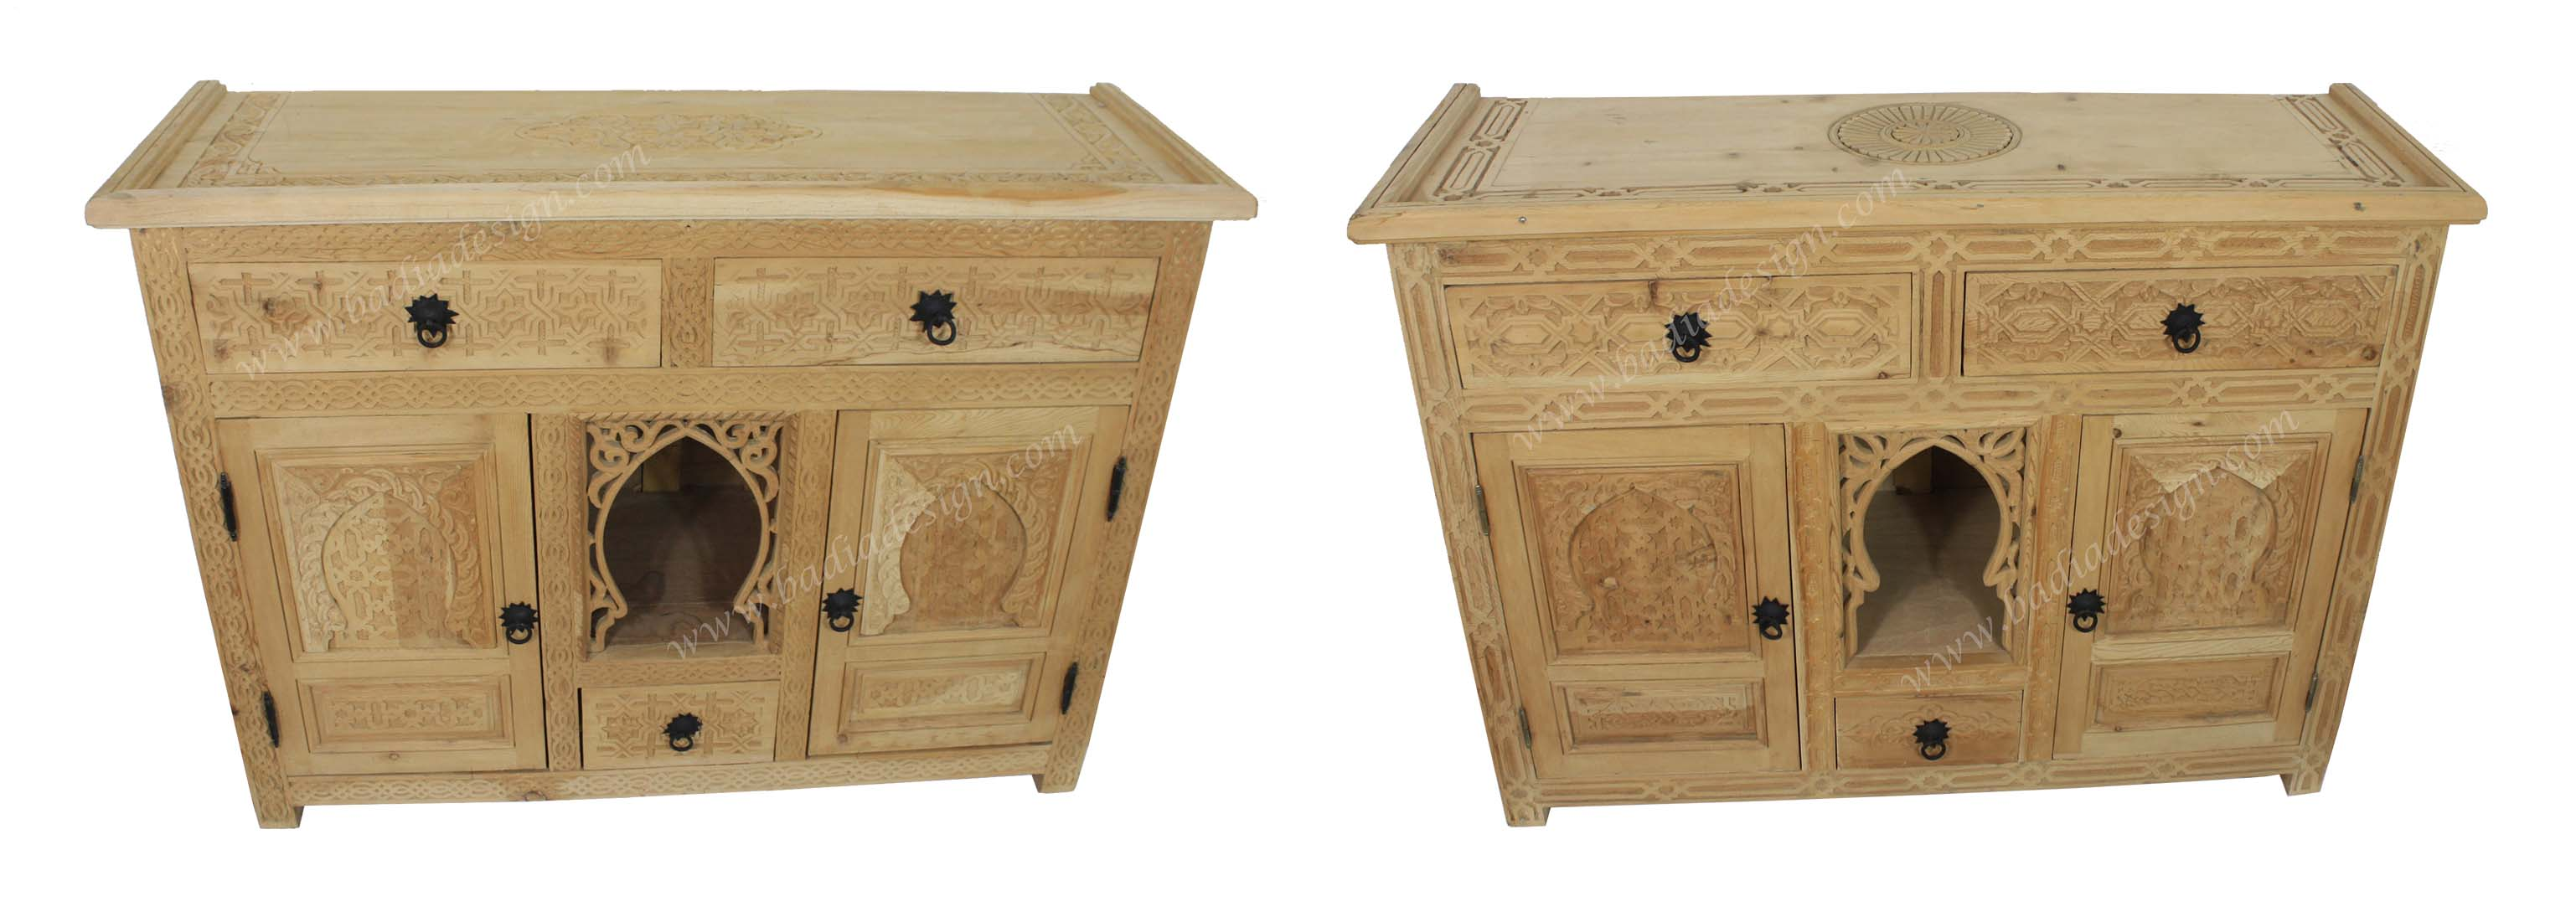 moroccan-hand-carved-wooden-cabinet-cw-ca054.jpg